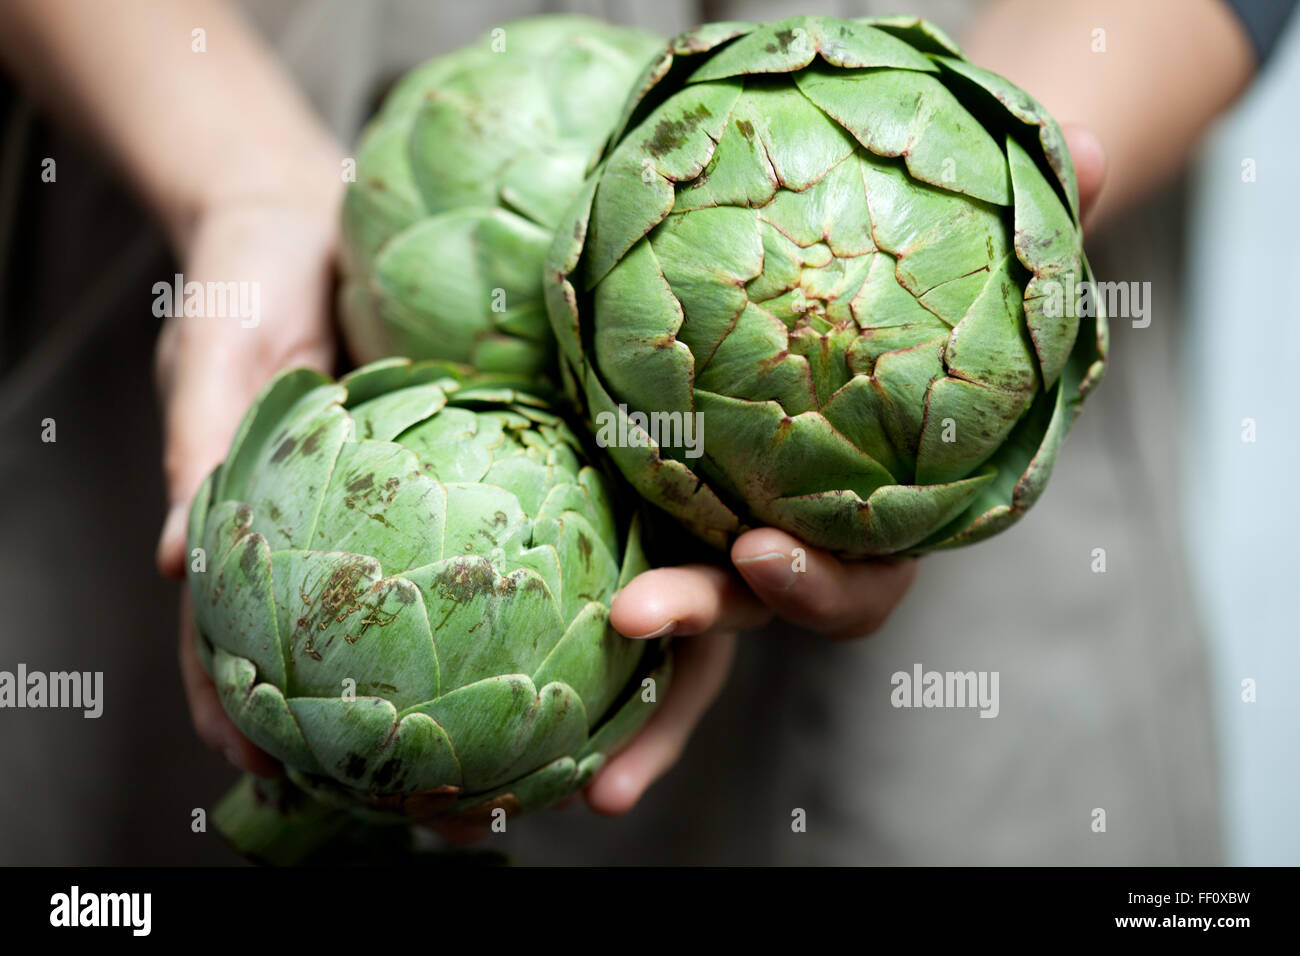 A woman holding three artichokes against a brown and gray apron. - Stock Image